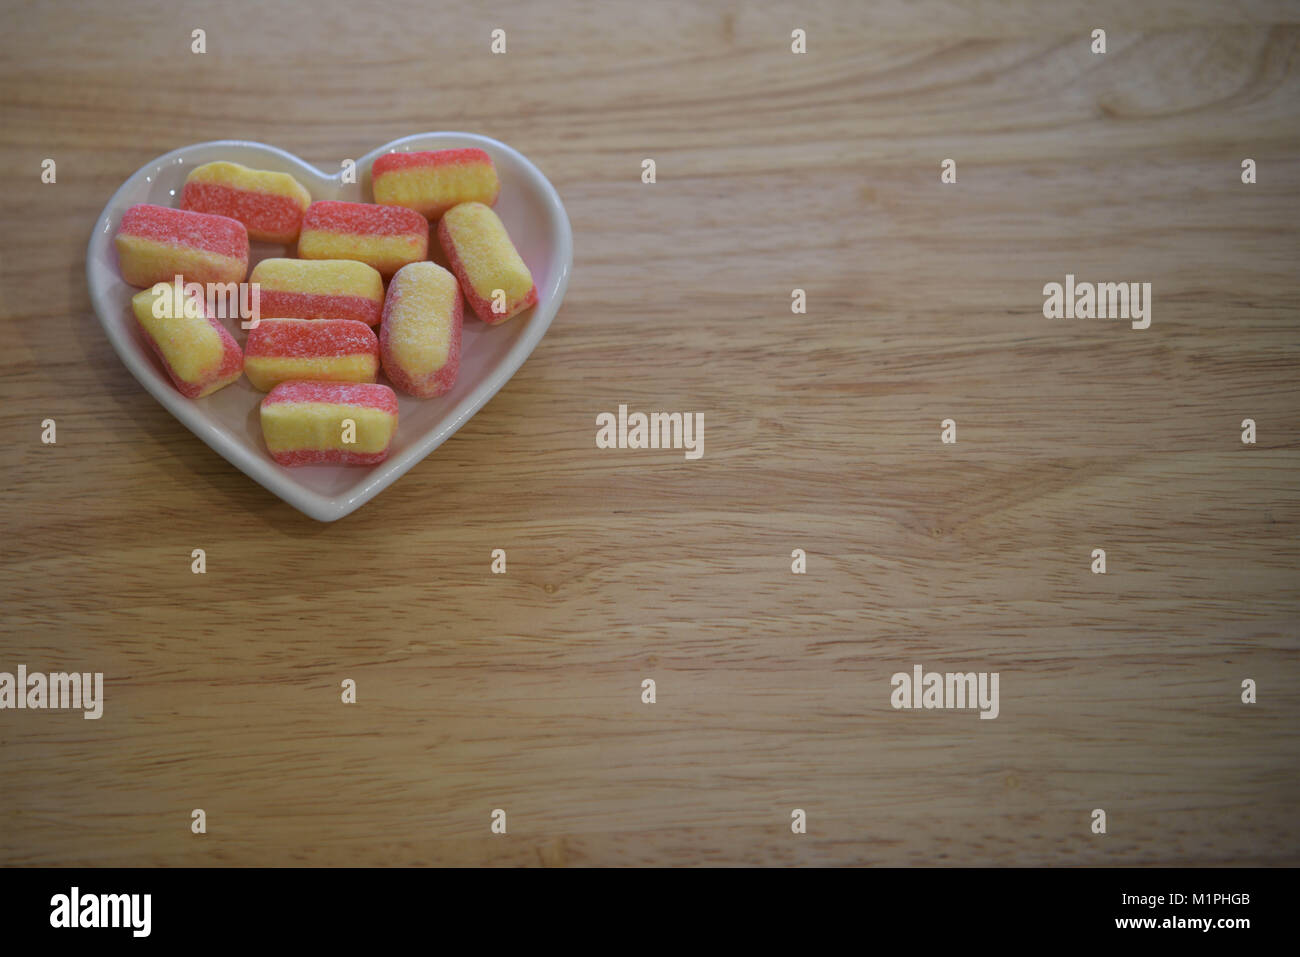 Old Fashioned Sweets Stockfotos & Old Fashioned Sweets Bilder - Alamy